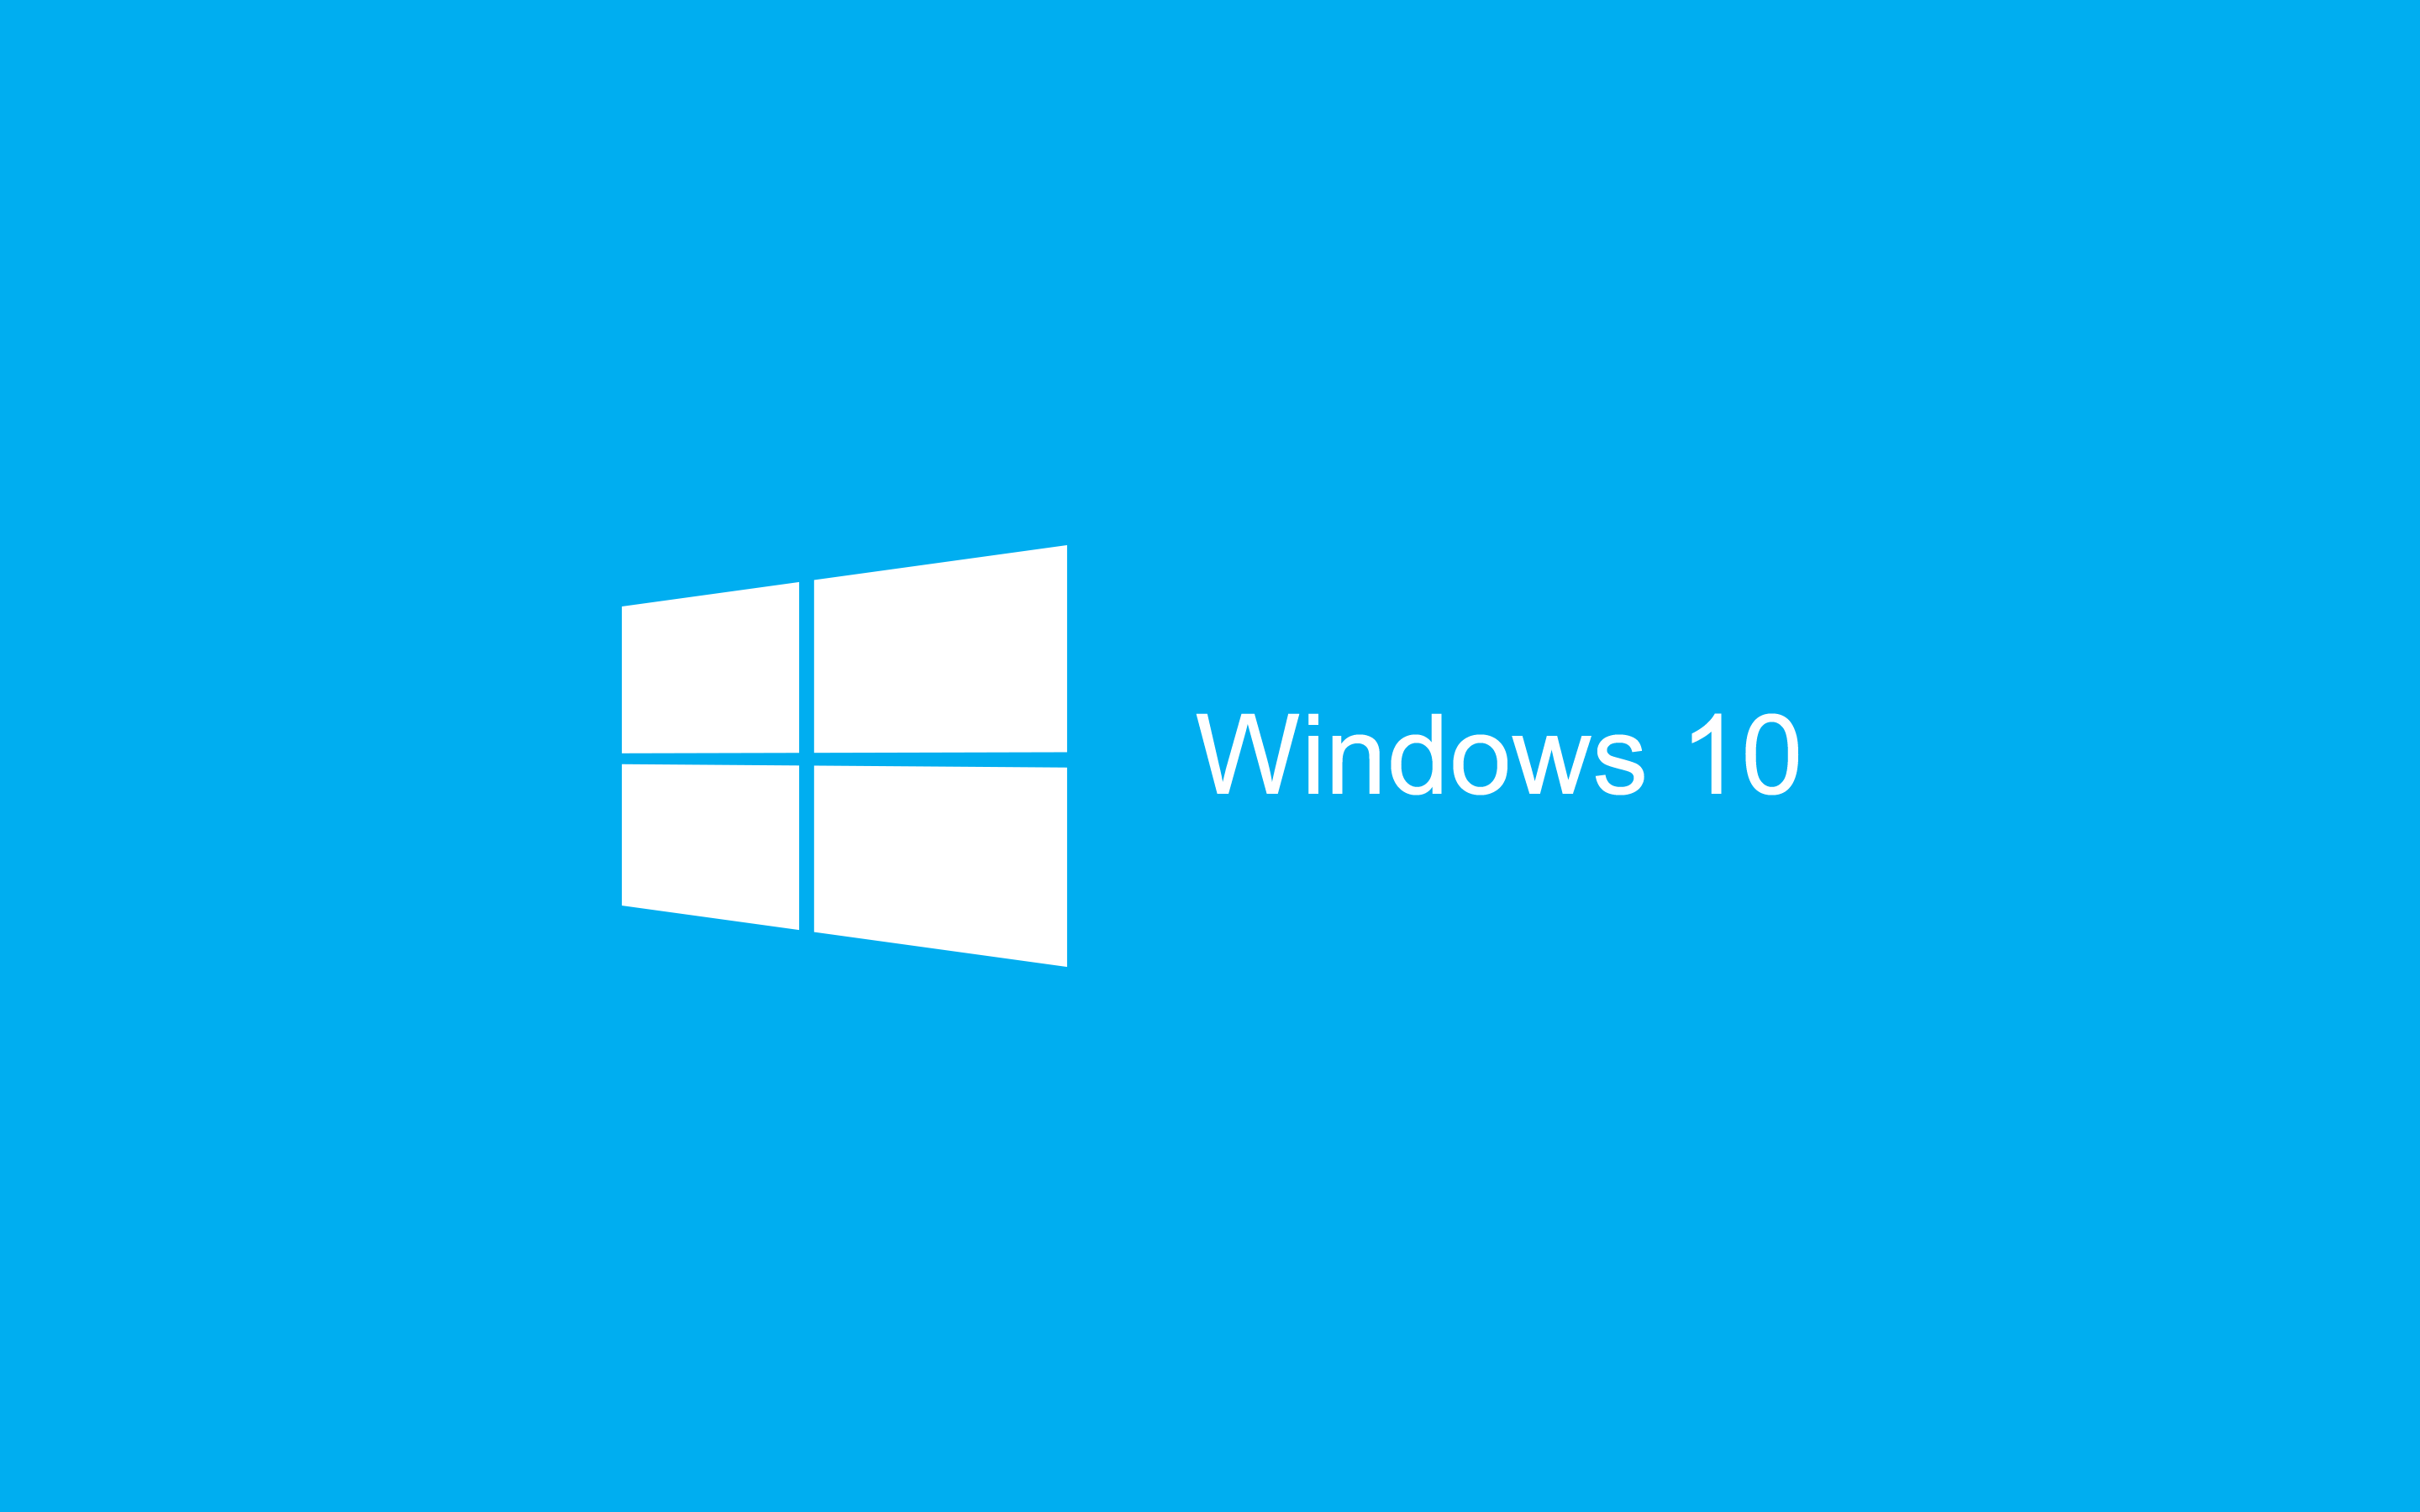 Windows 10 Wallpapers HD Download : Freakify.com Wallpaper Windows 10 Hd